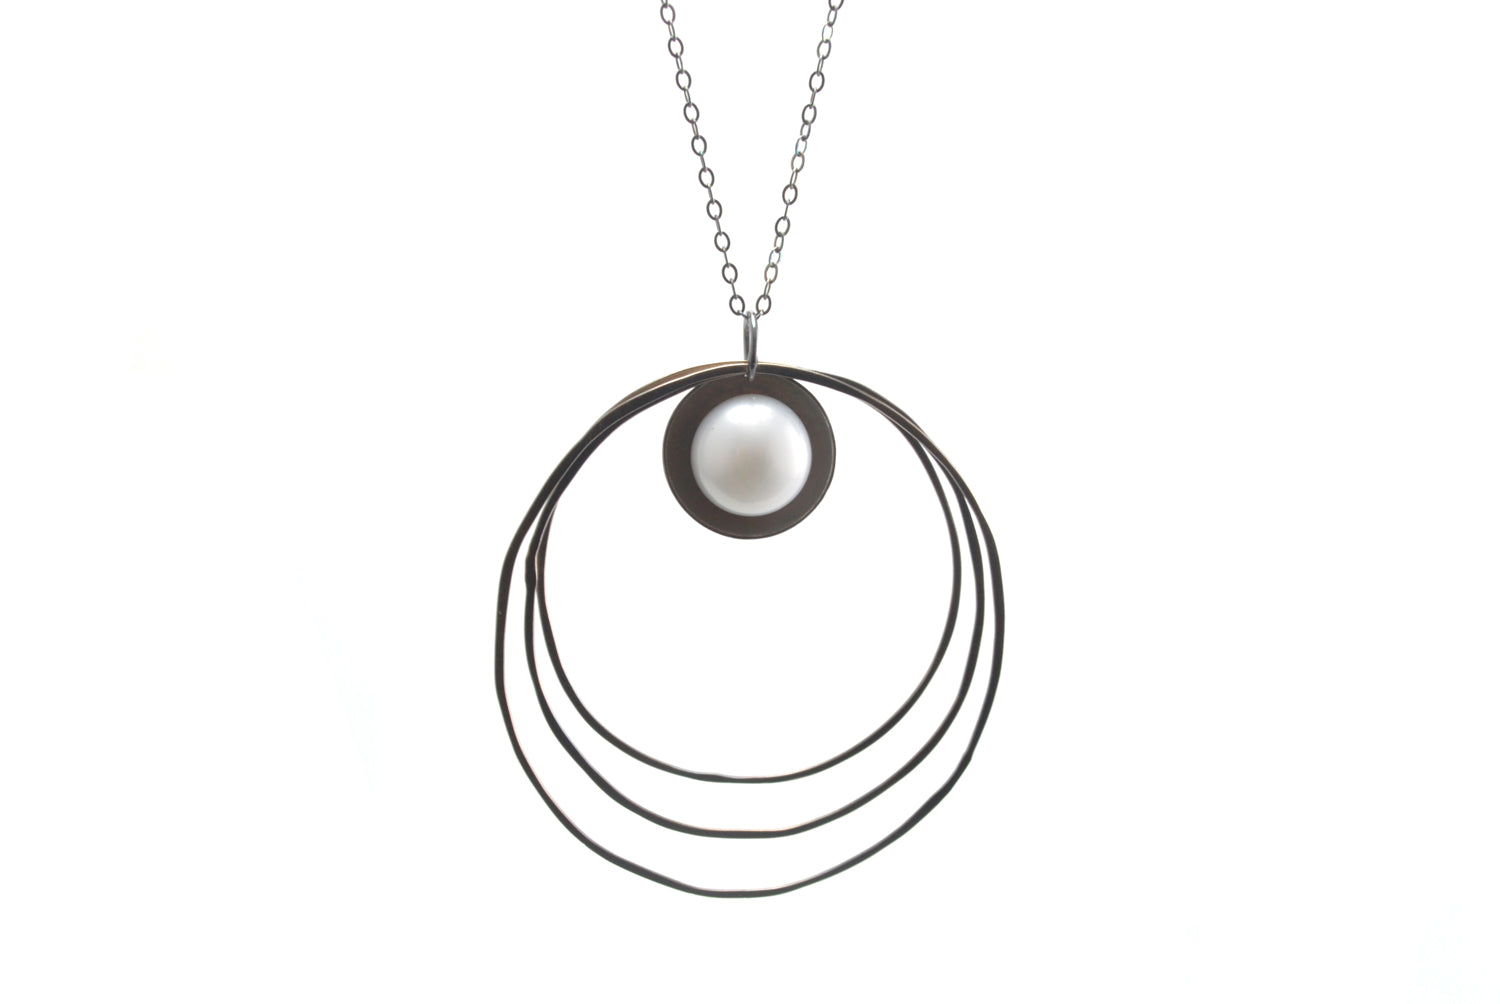 Pearl and Three RIngs Necklace | Olivia de Soria